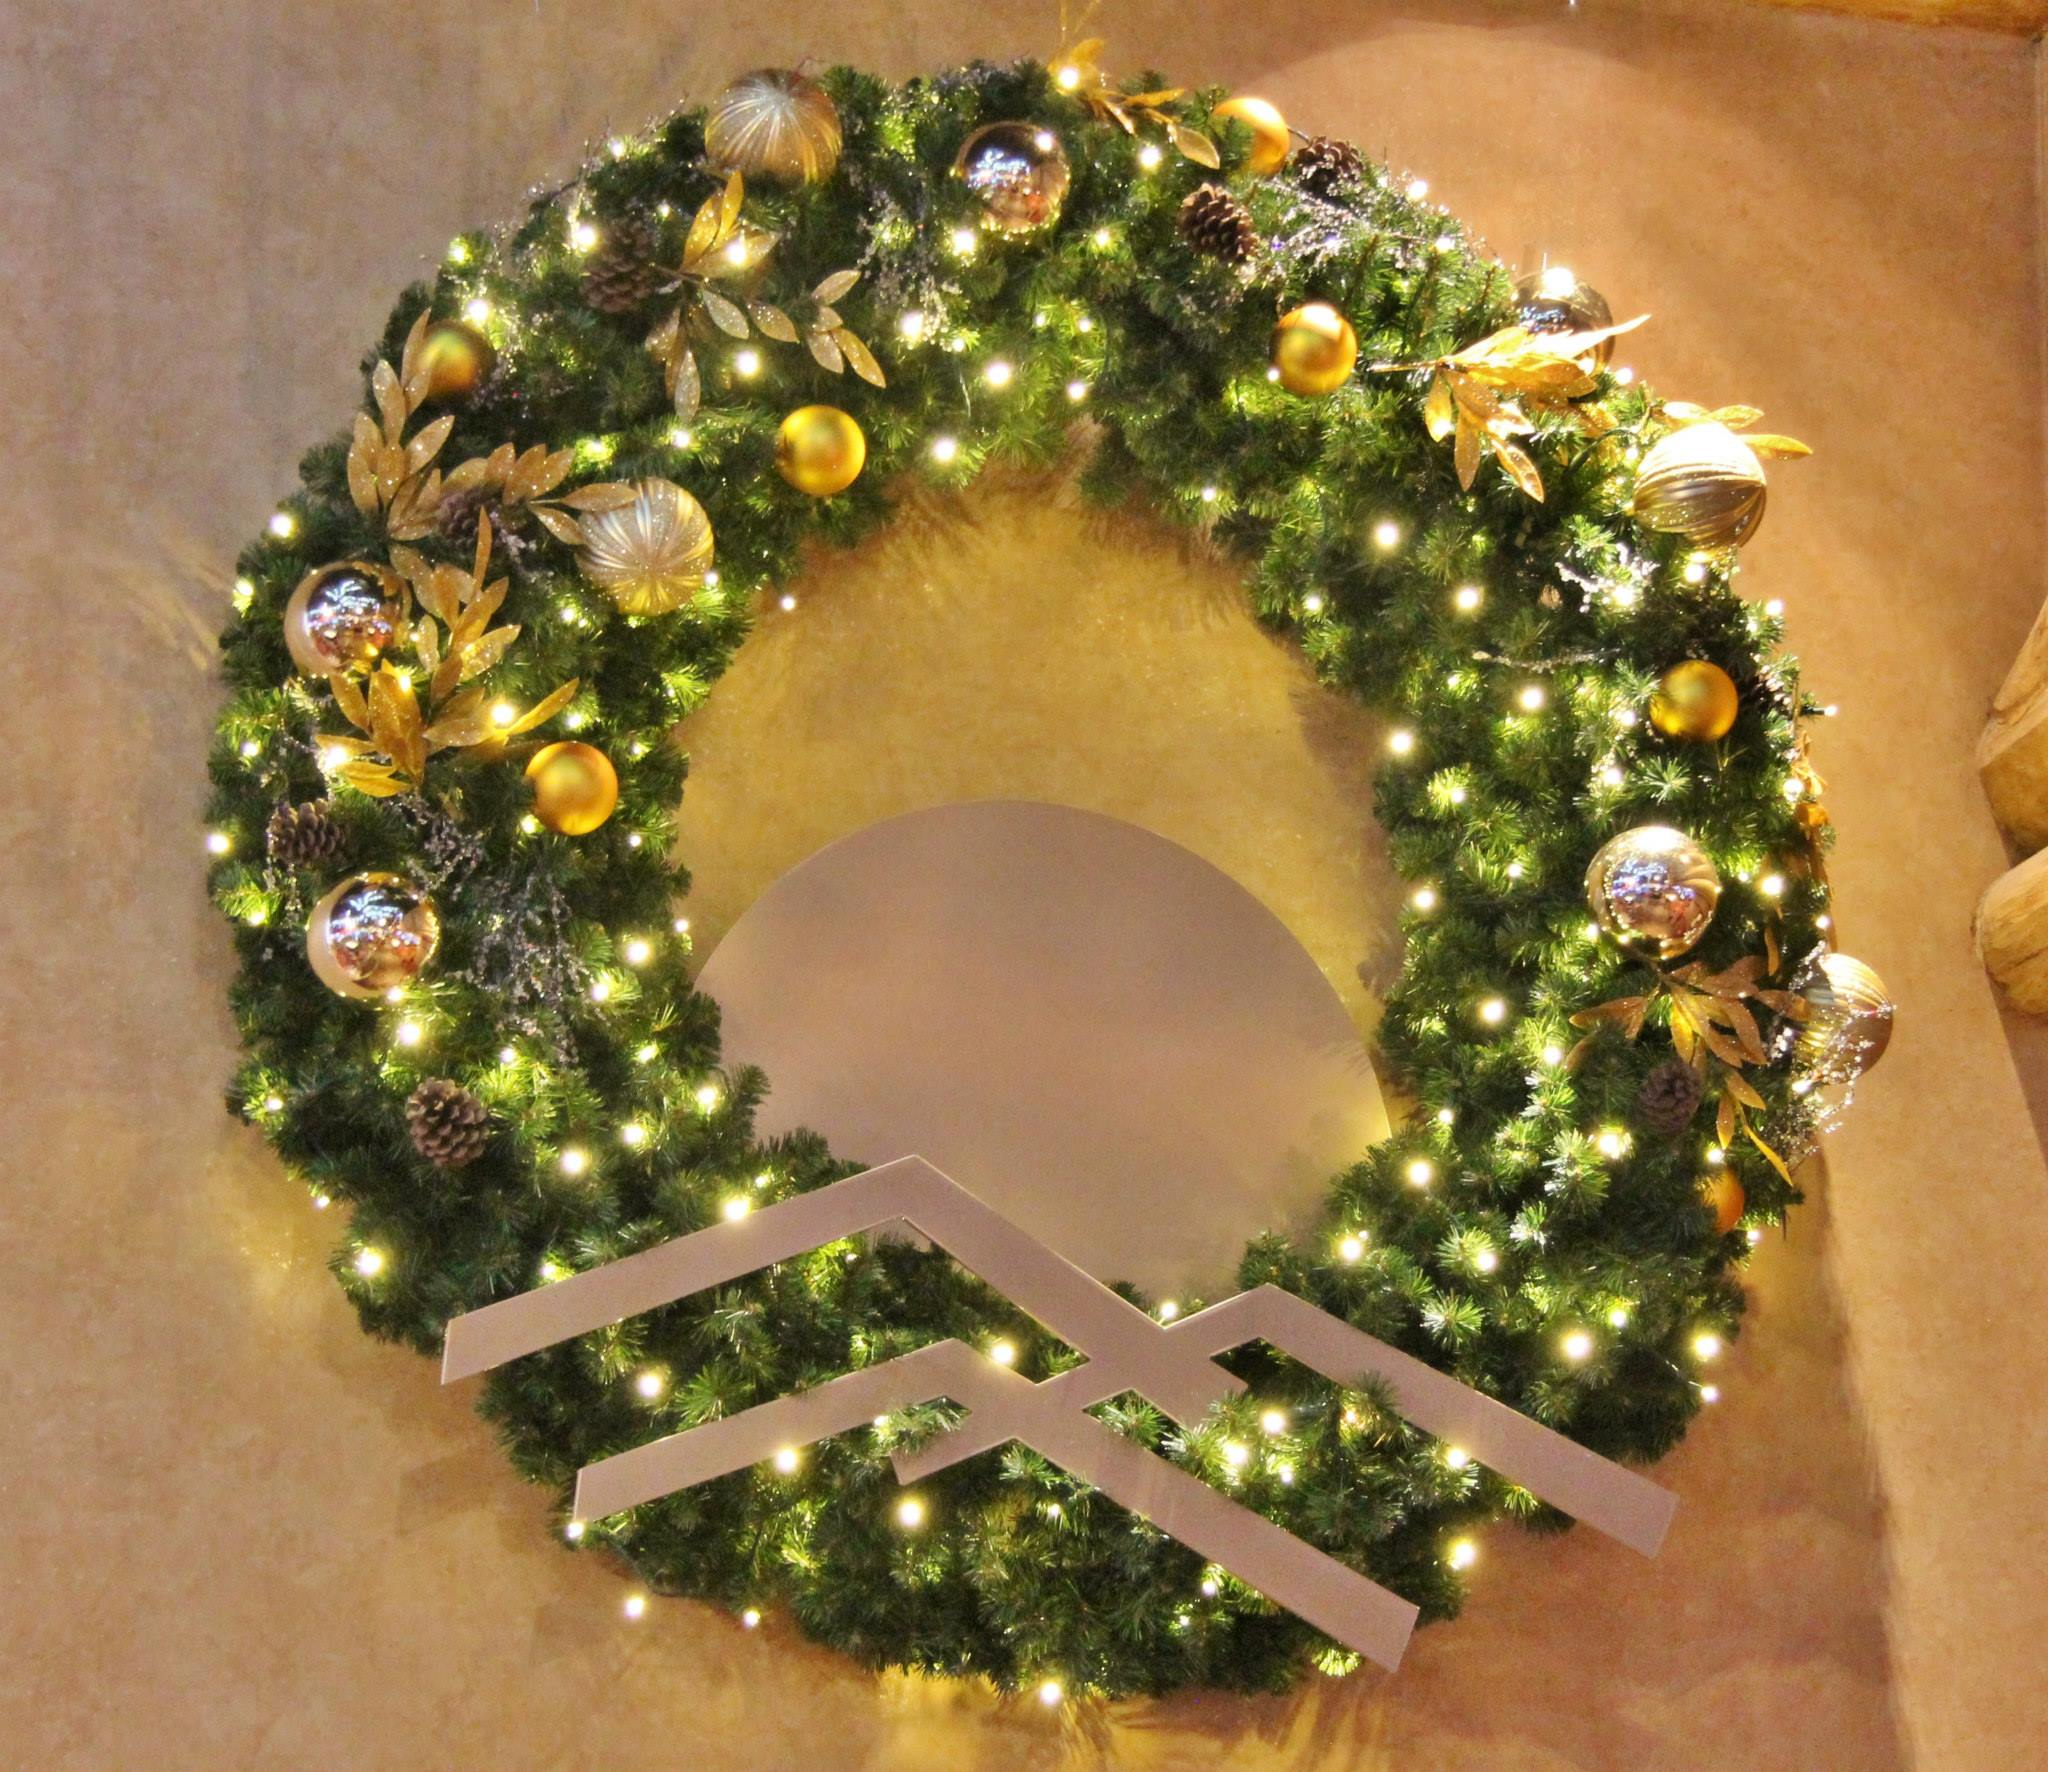 Outdoor mercial Christmas Wreaths